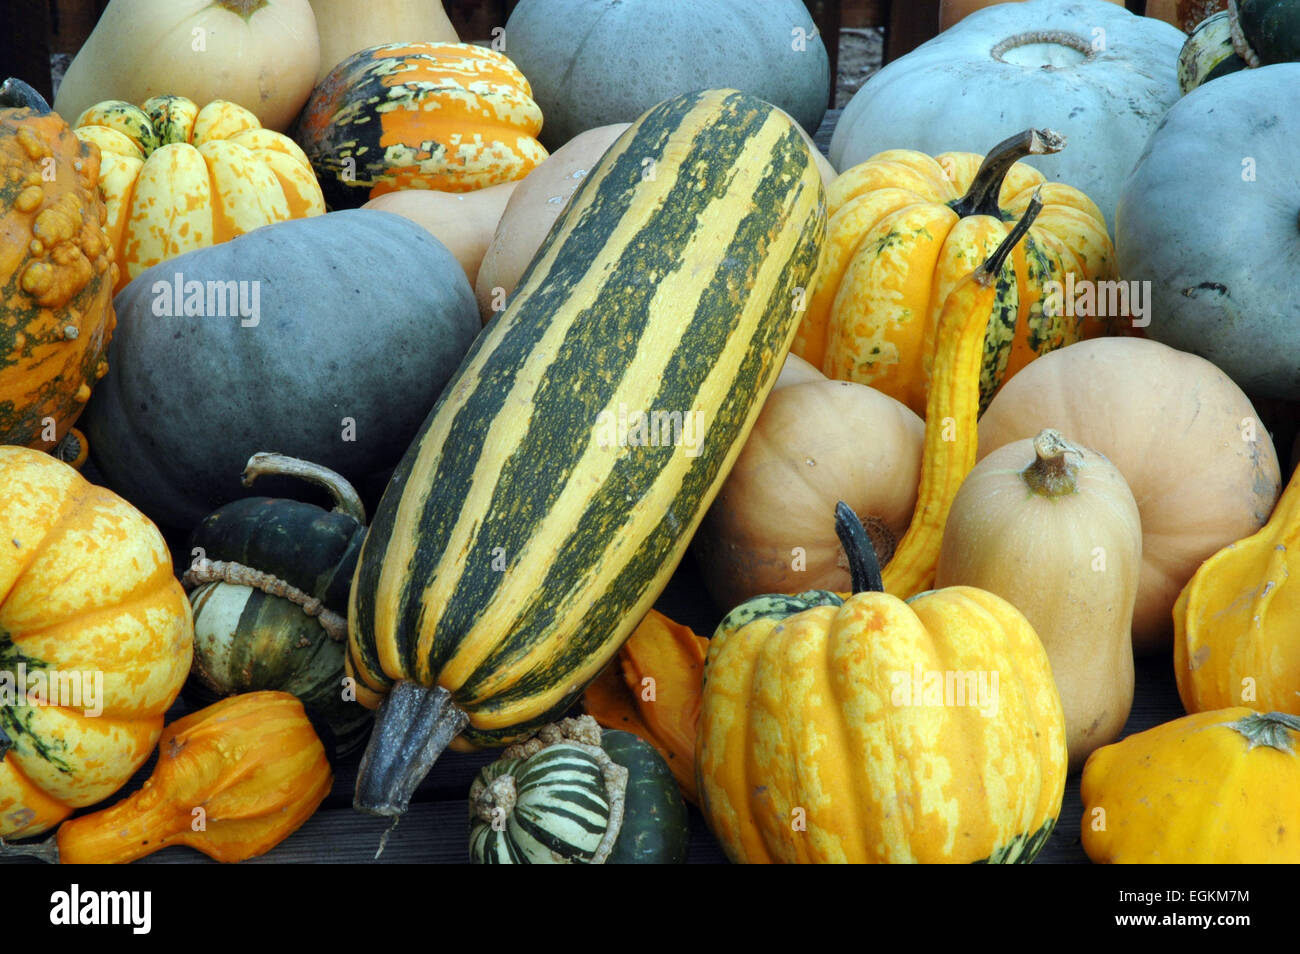 pumpkins and squashes - Stock Image